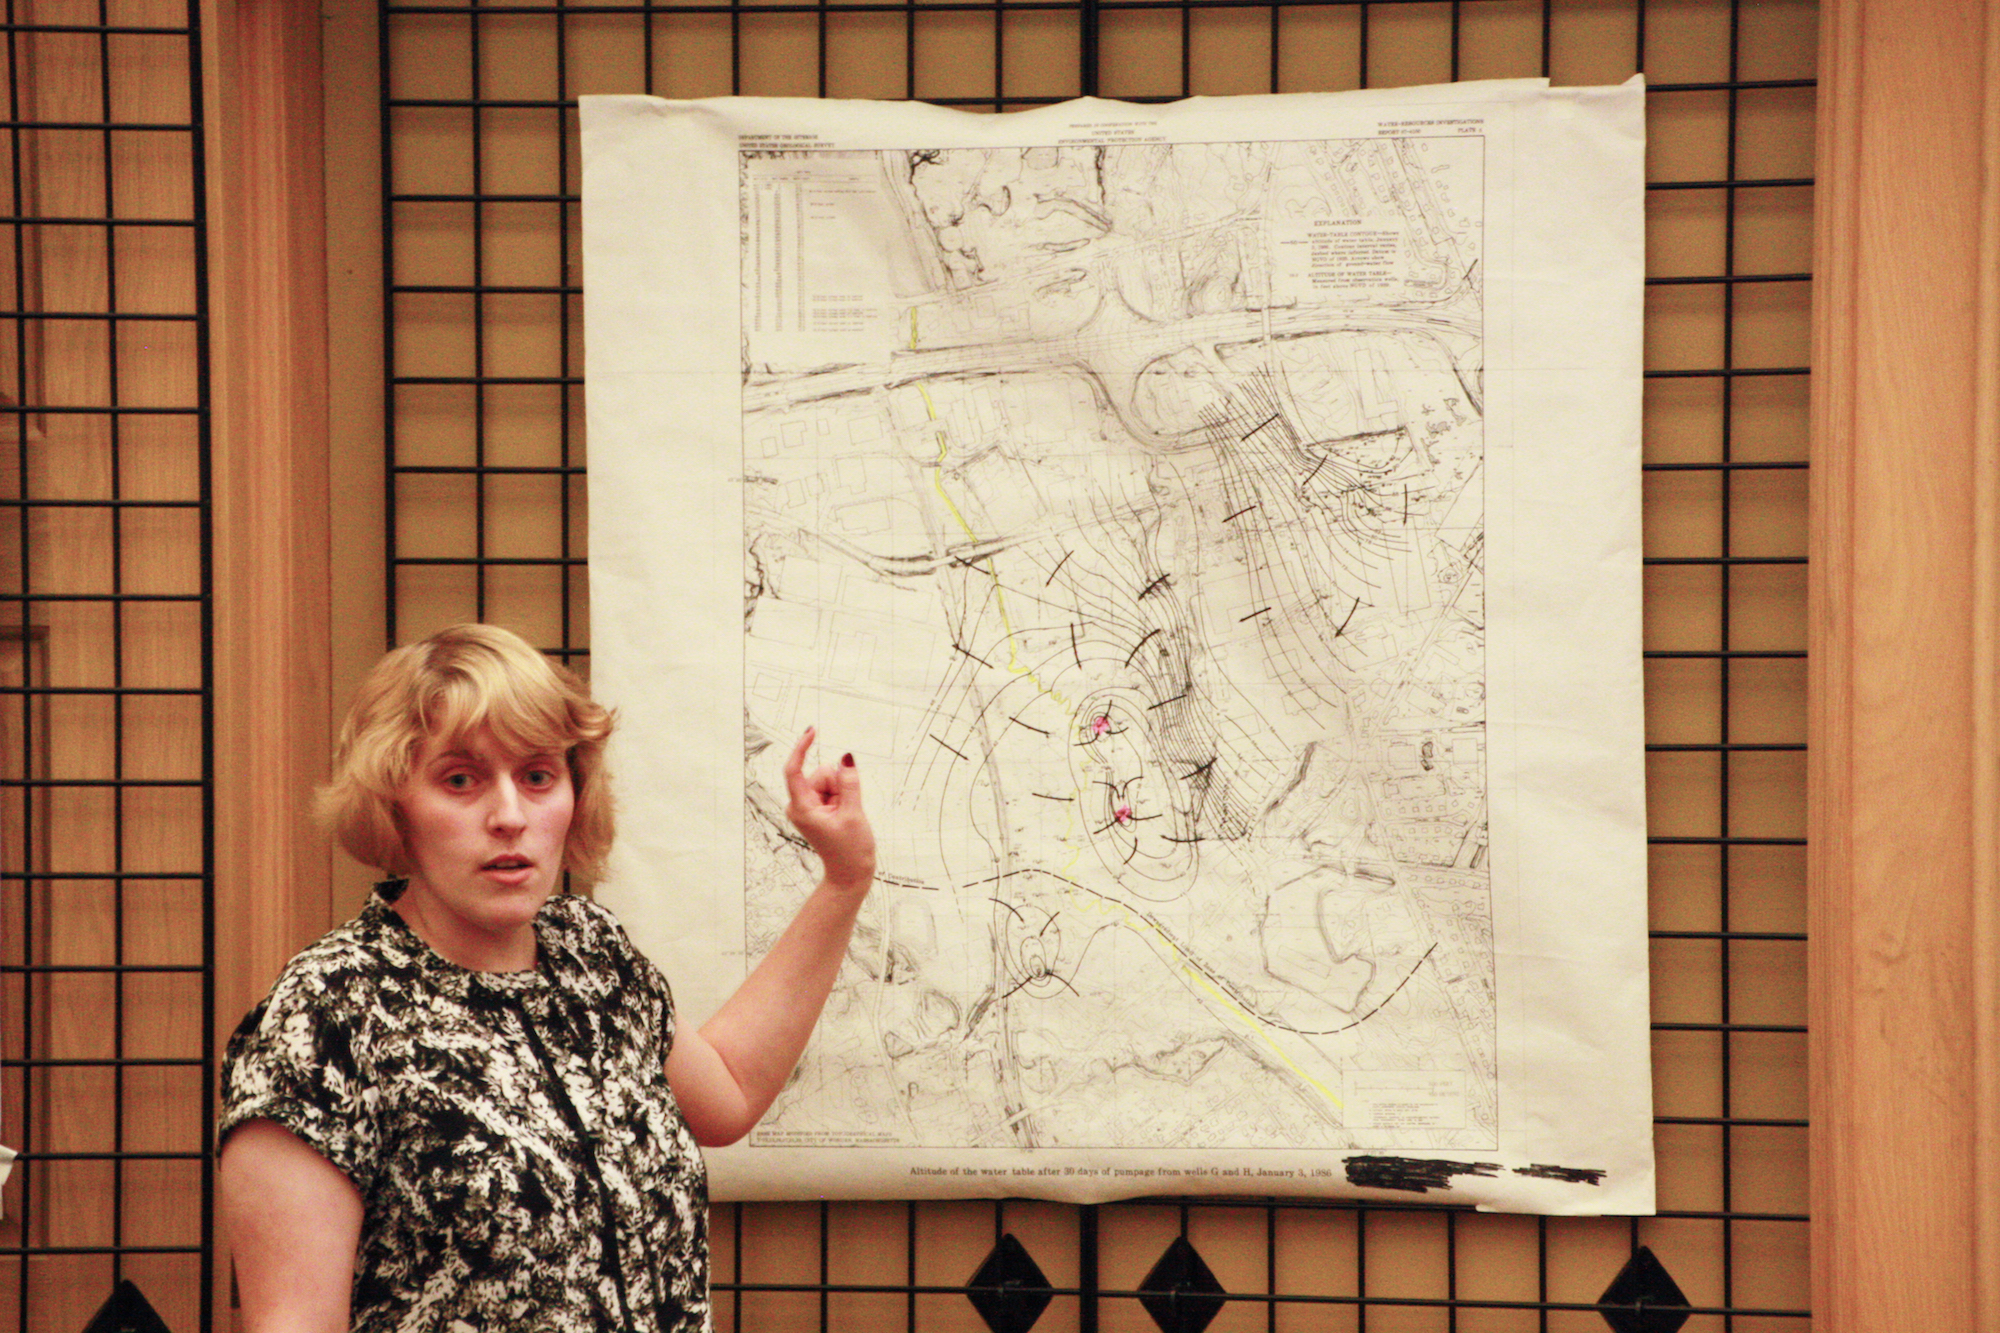 A woman stands in front of a map and points.